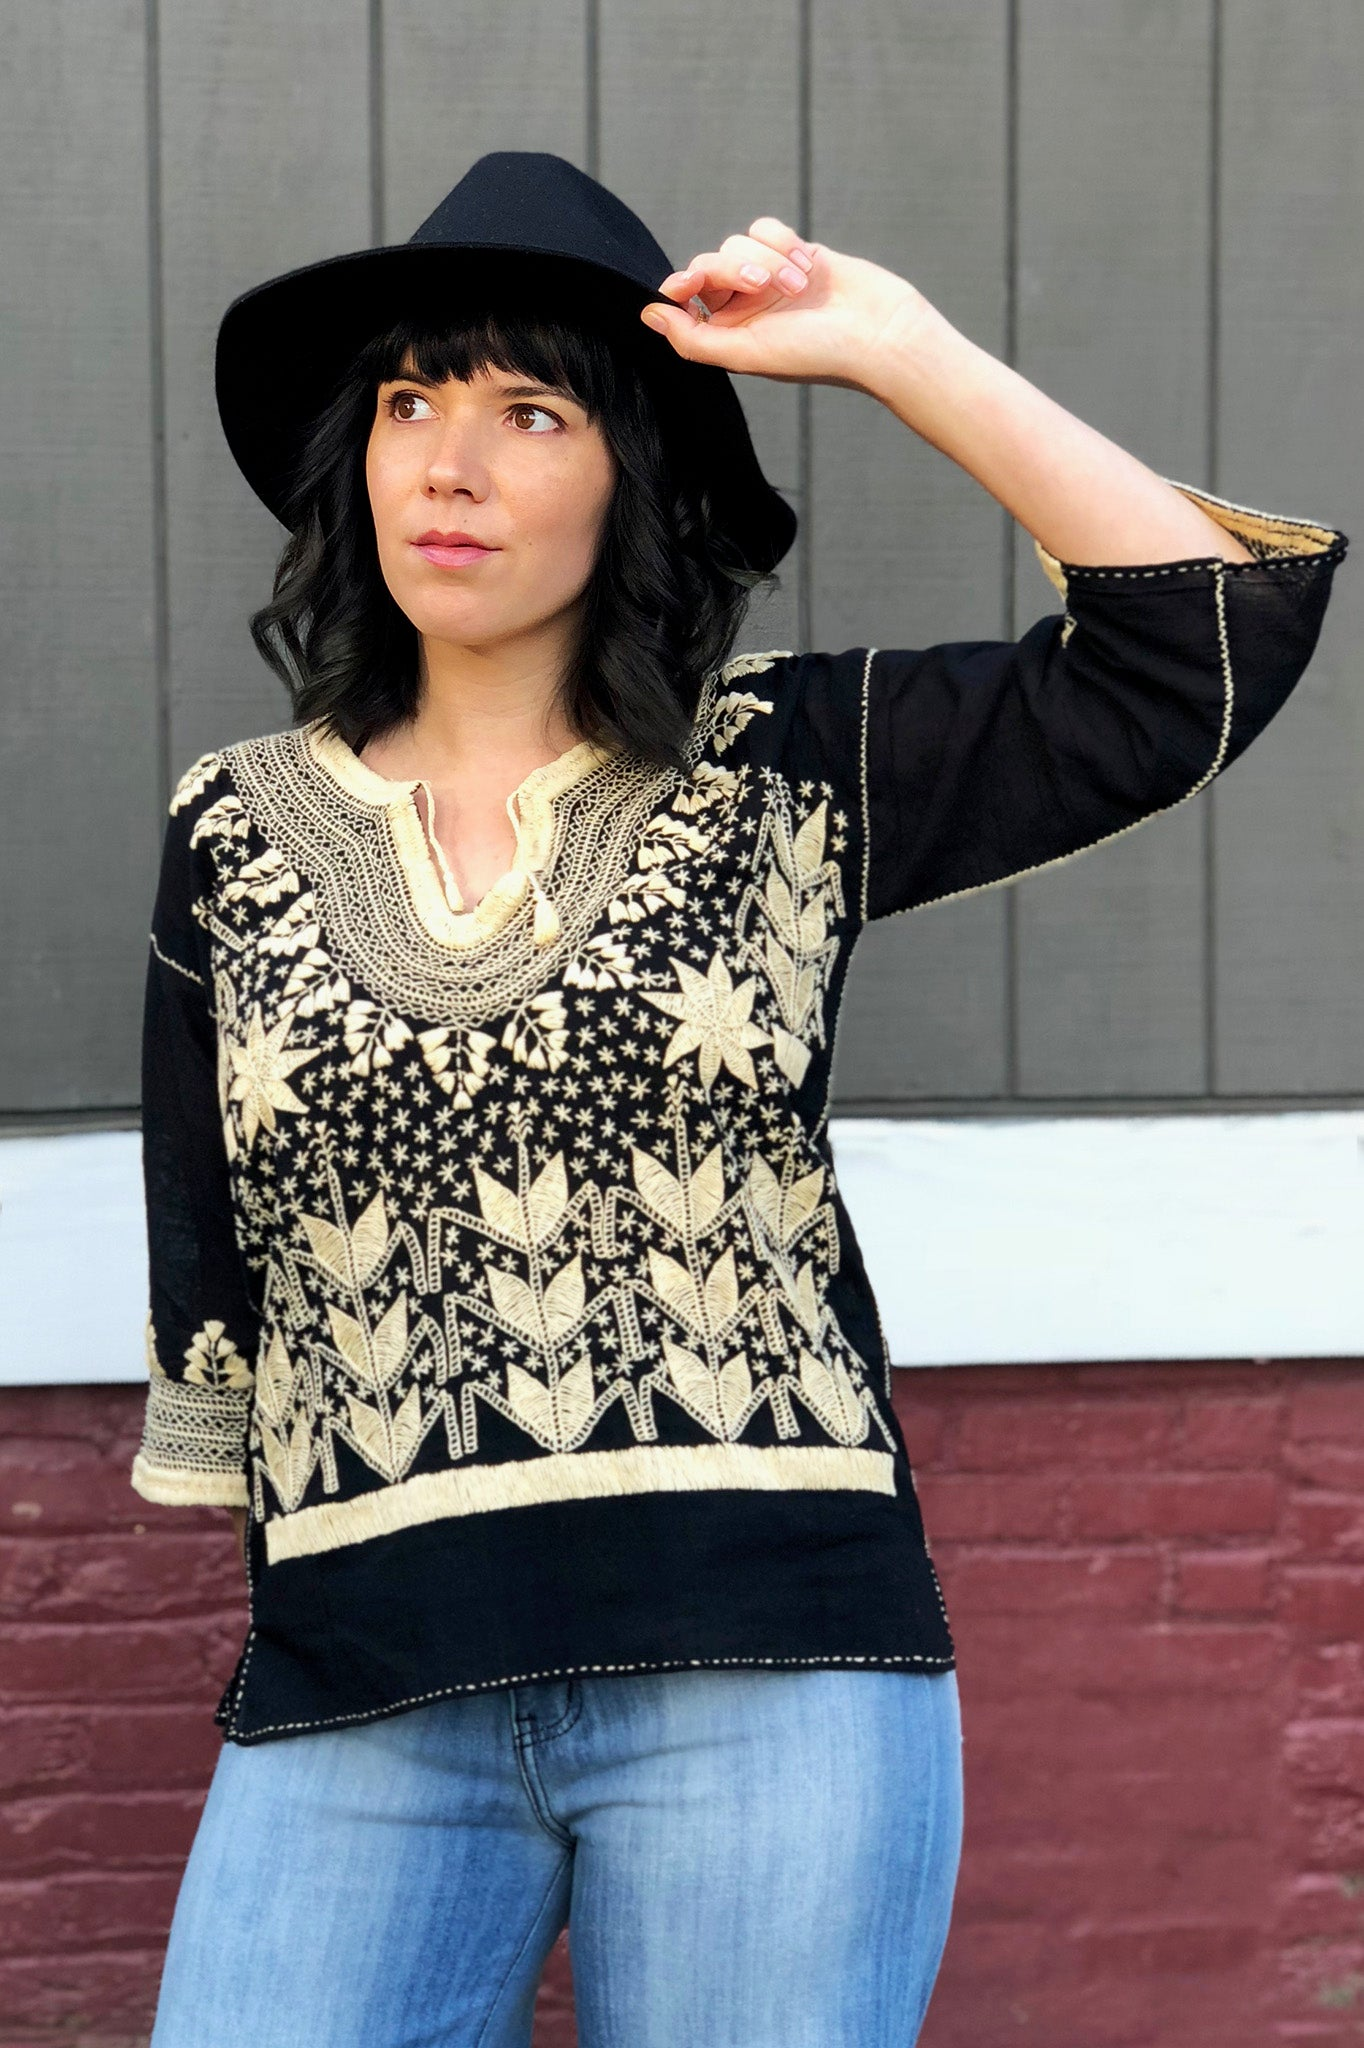 ShopMucho owner styles the Maya Mexican Blouse on the blog